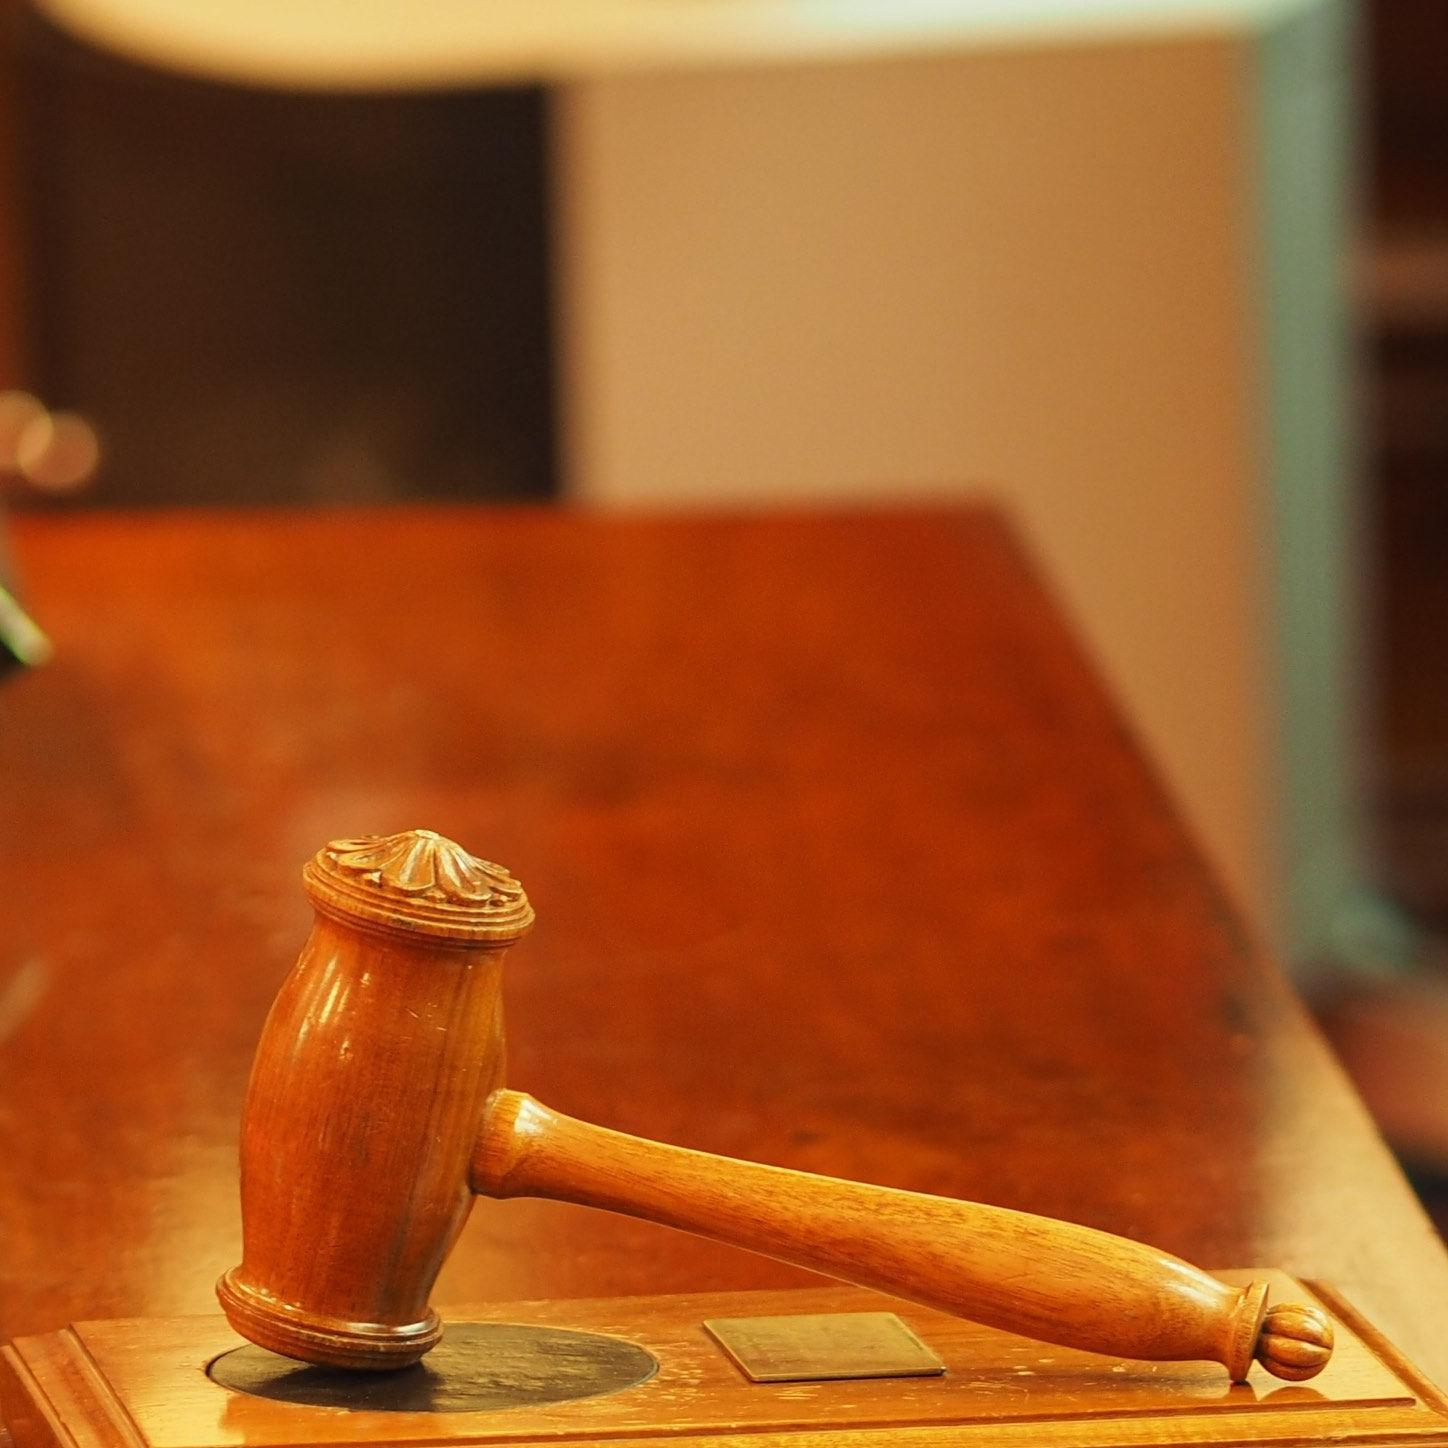 photo of gavel for law + government events